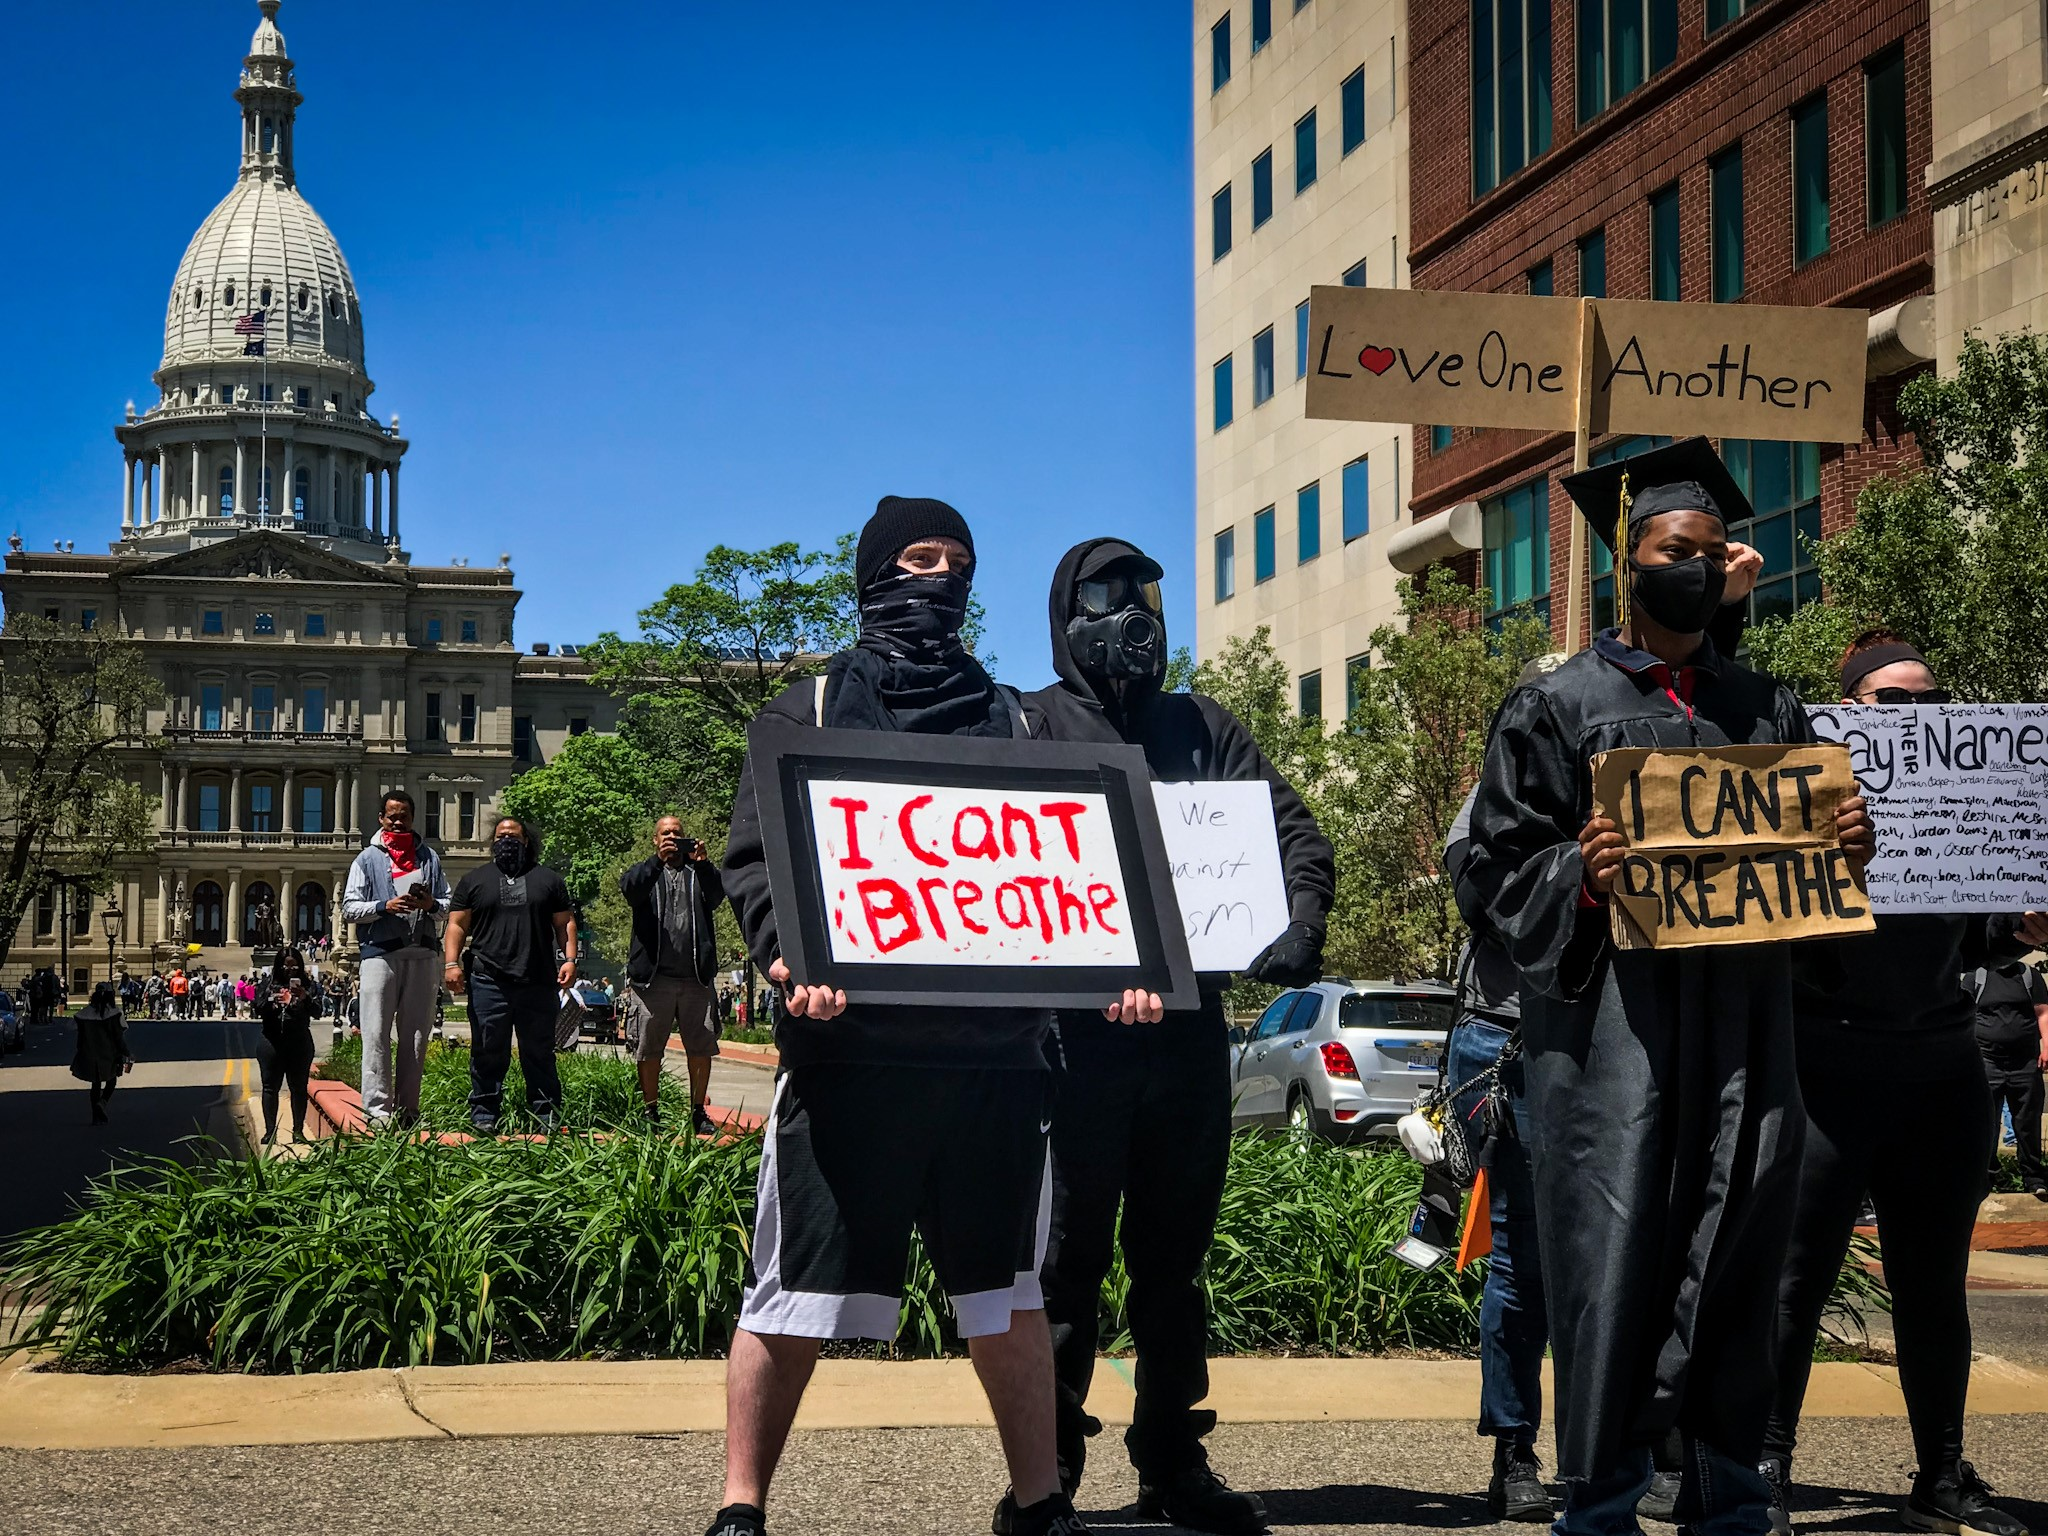 People gathered in Lansing on Sunday, May 31, 2020 to protest the death of George Floyd. This image was captured while the protest was peaceful before turning destructive as the night went on. (WWMT/Mikenzie Frost)